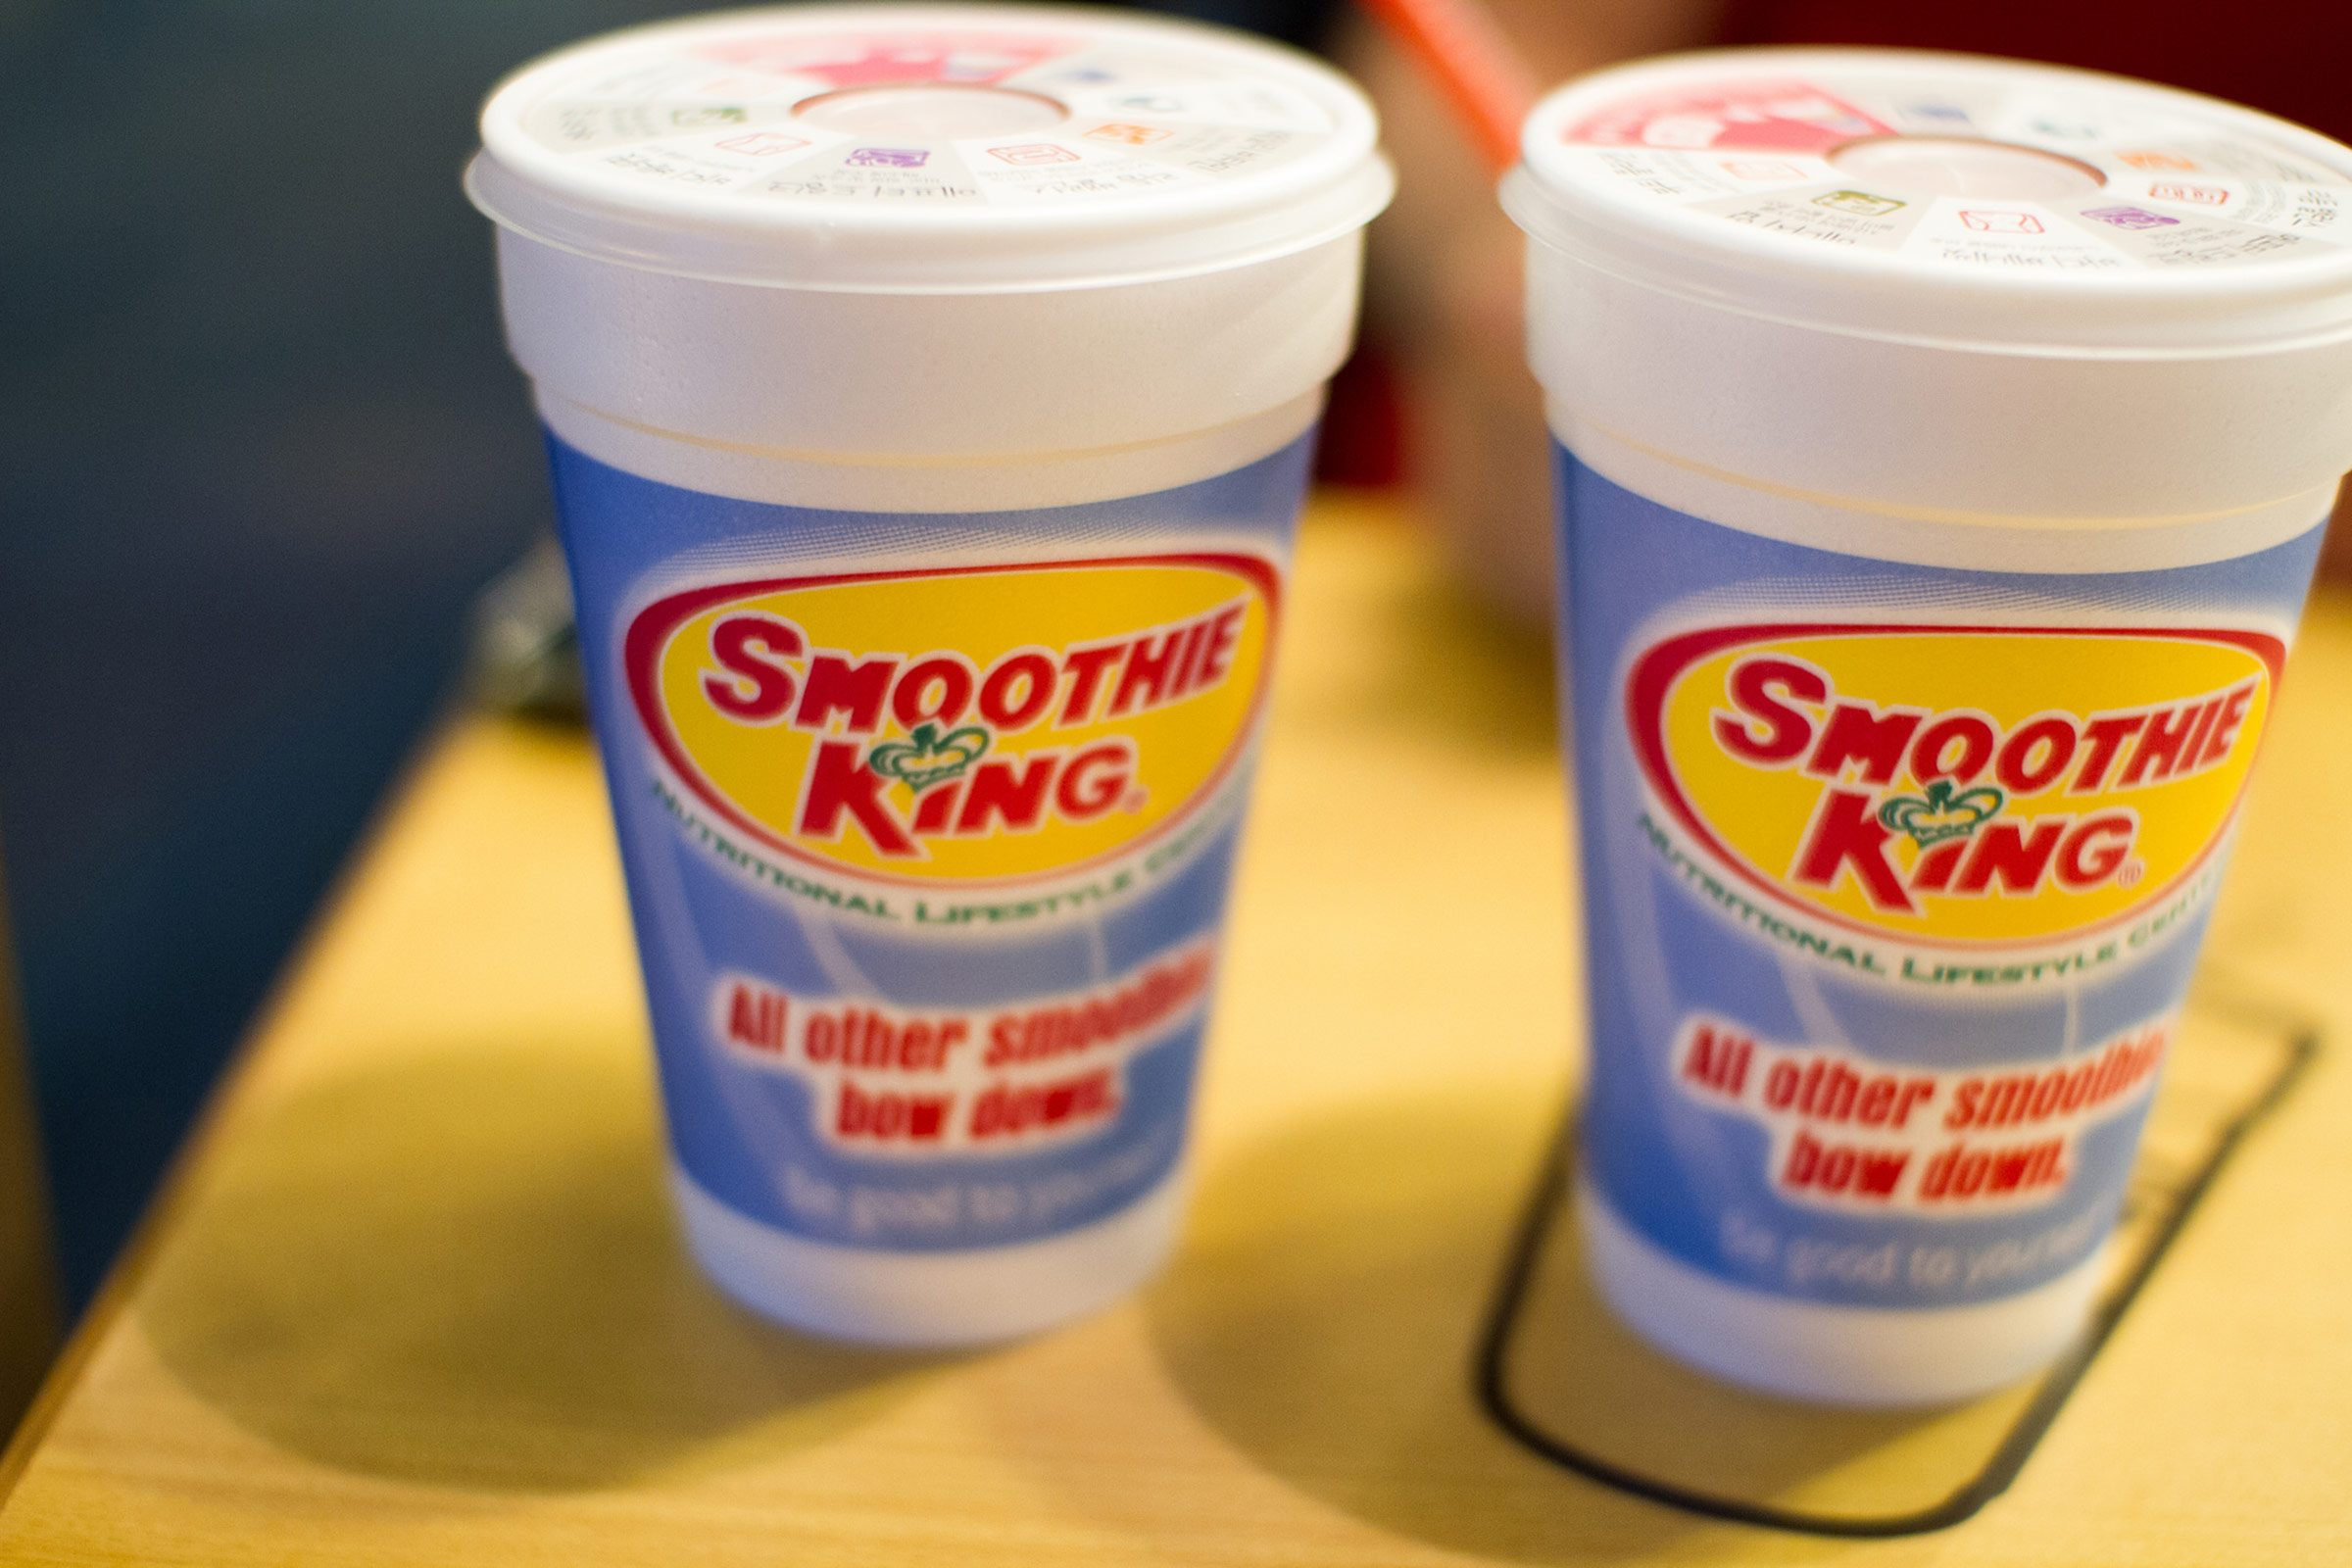 Smoothie King's 40-Ounce Acai Adventure